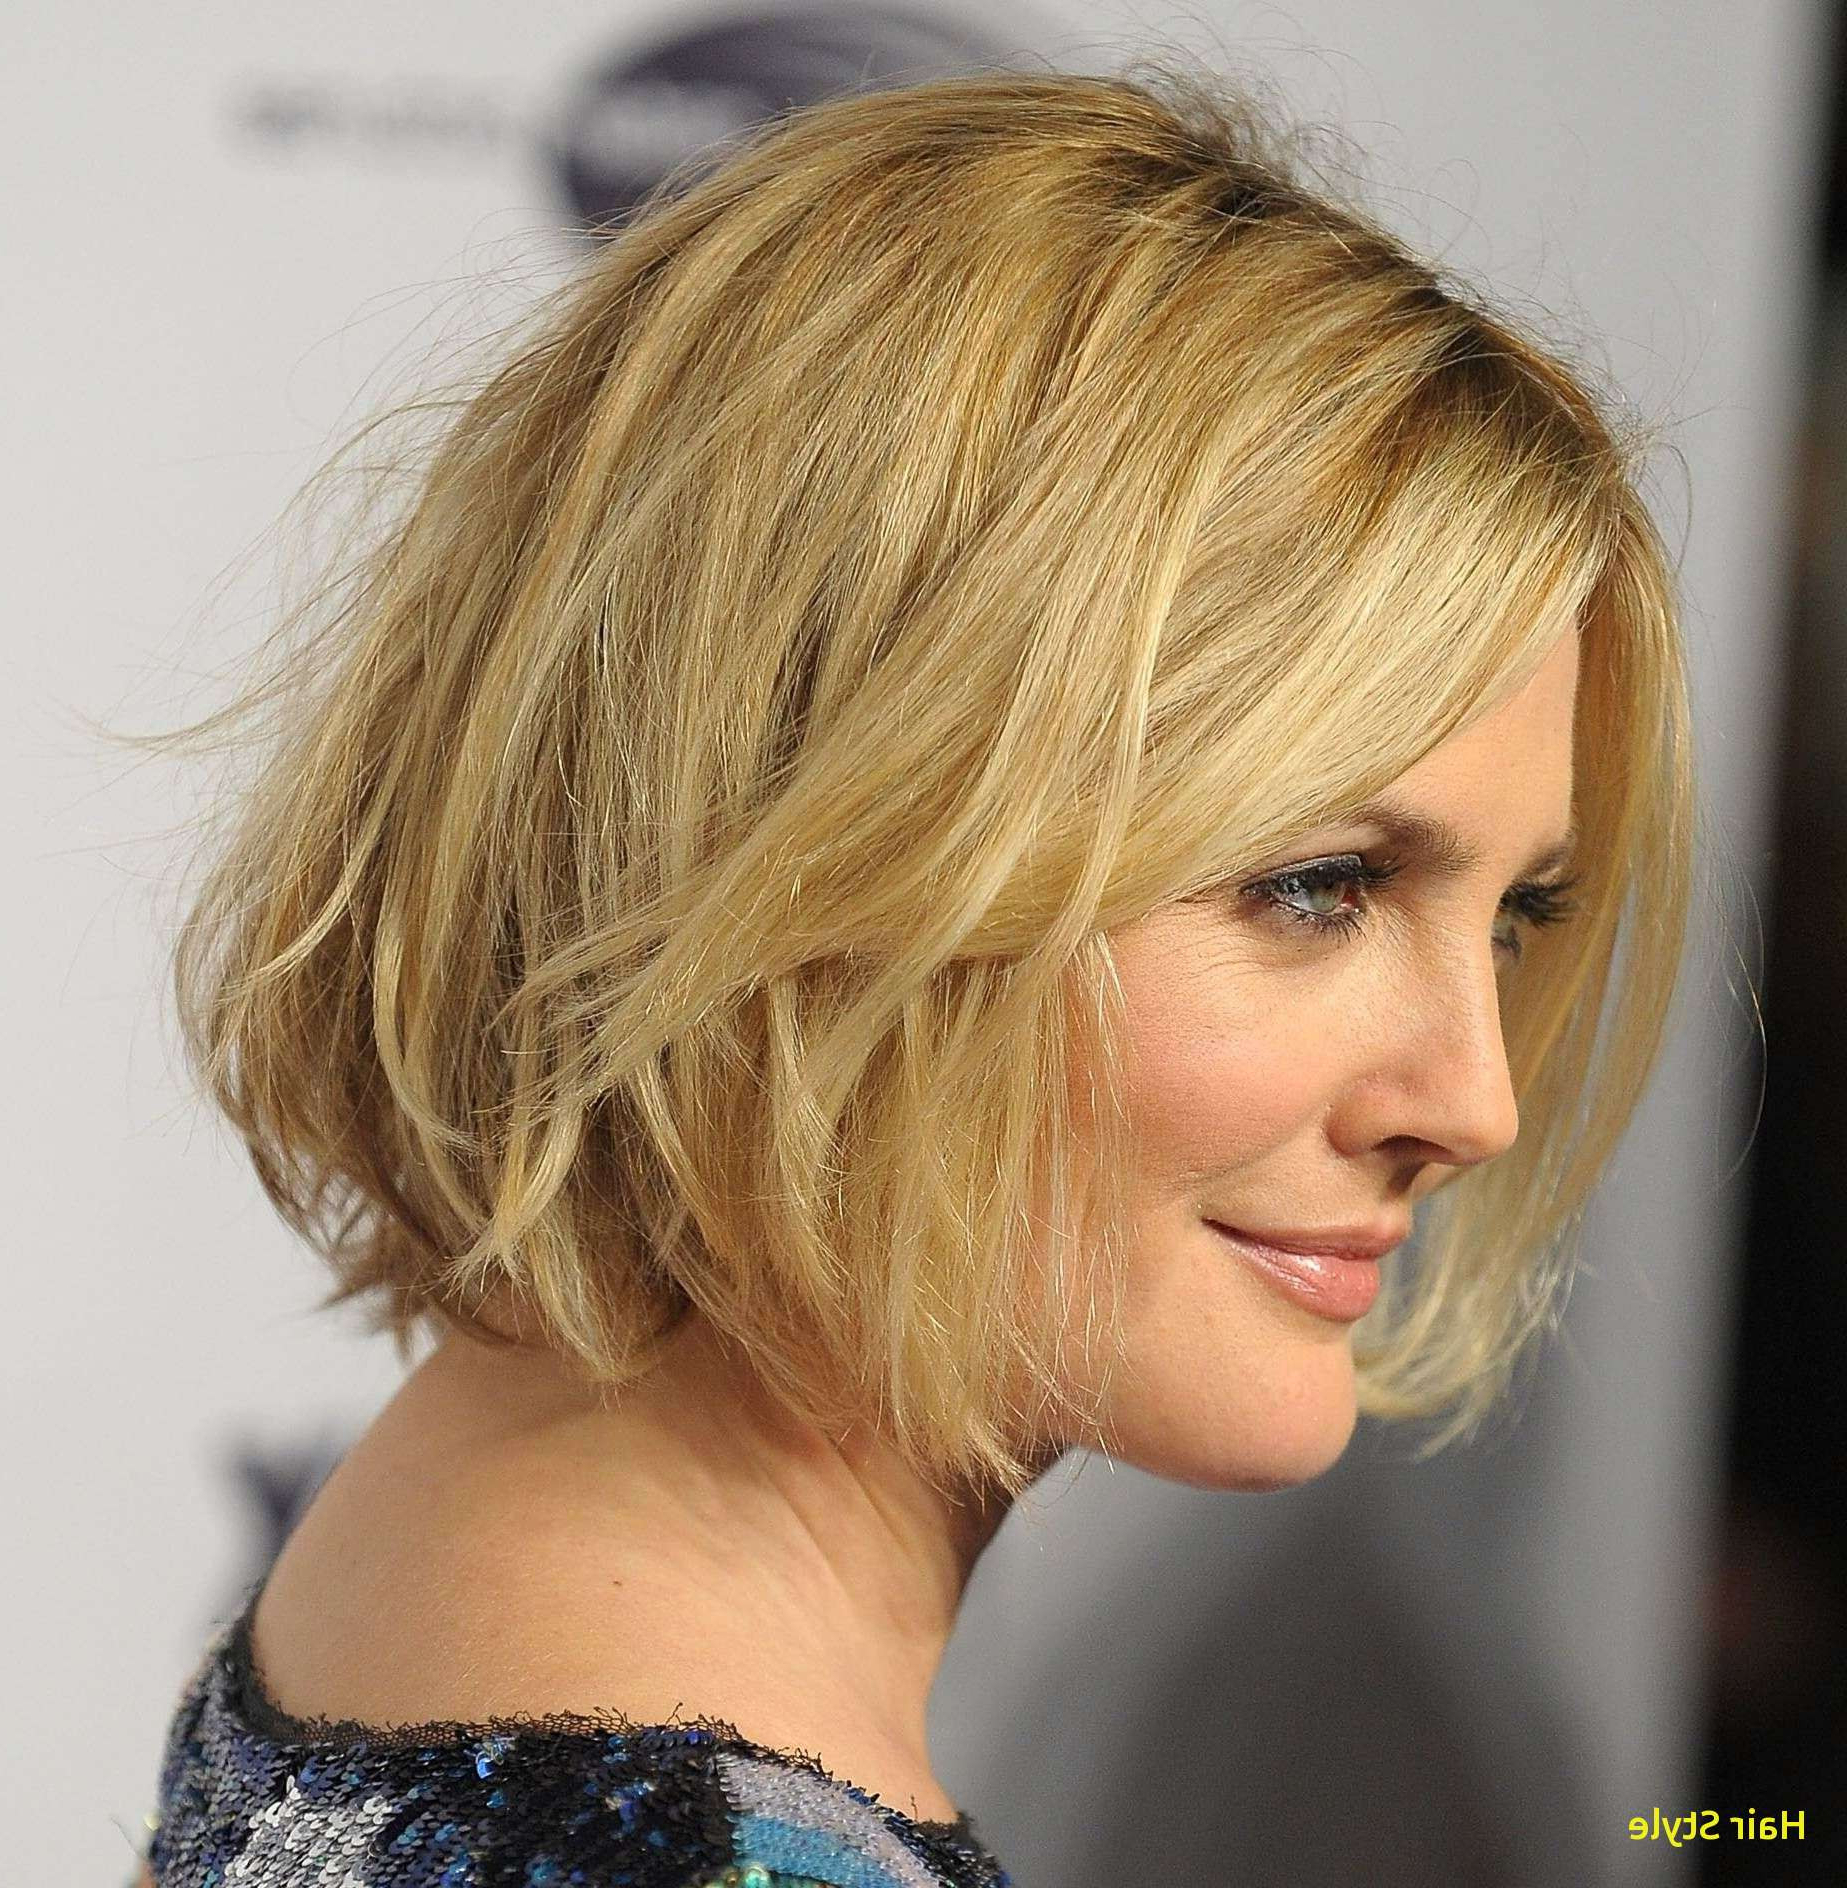 Drew Barrymore Short Hairstyles New Fresh Short Bob Hairstyles 2016 With Drew Barrymore Short Haircuts (View 11 of 25)